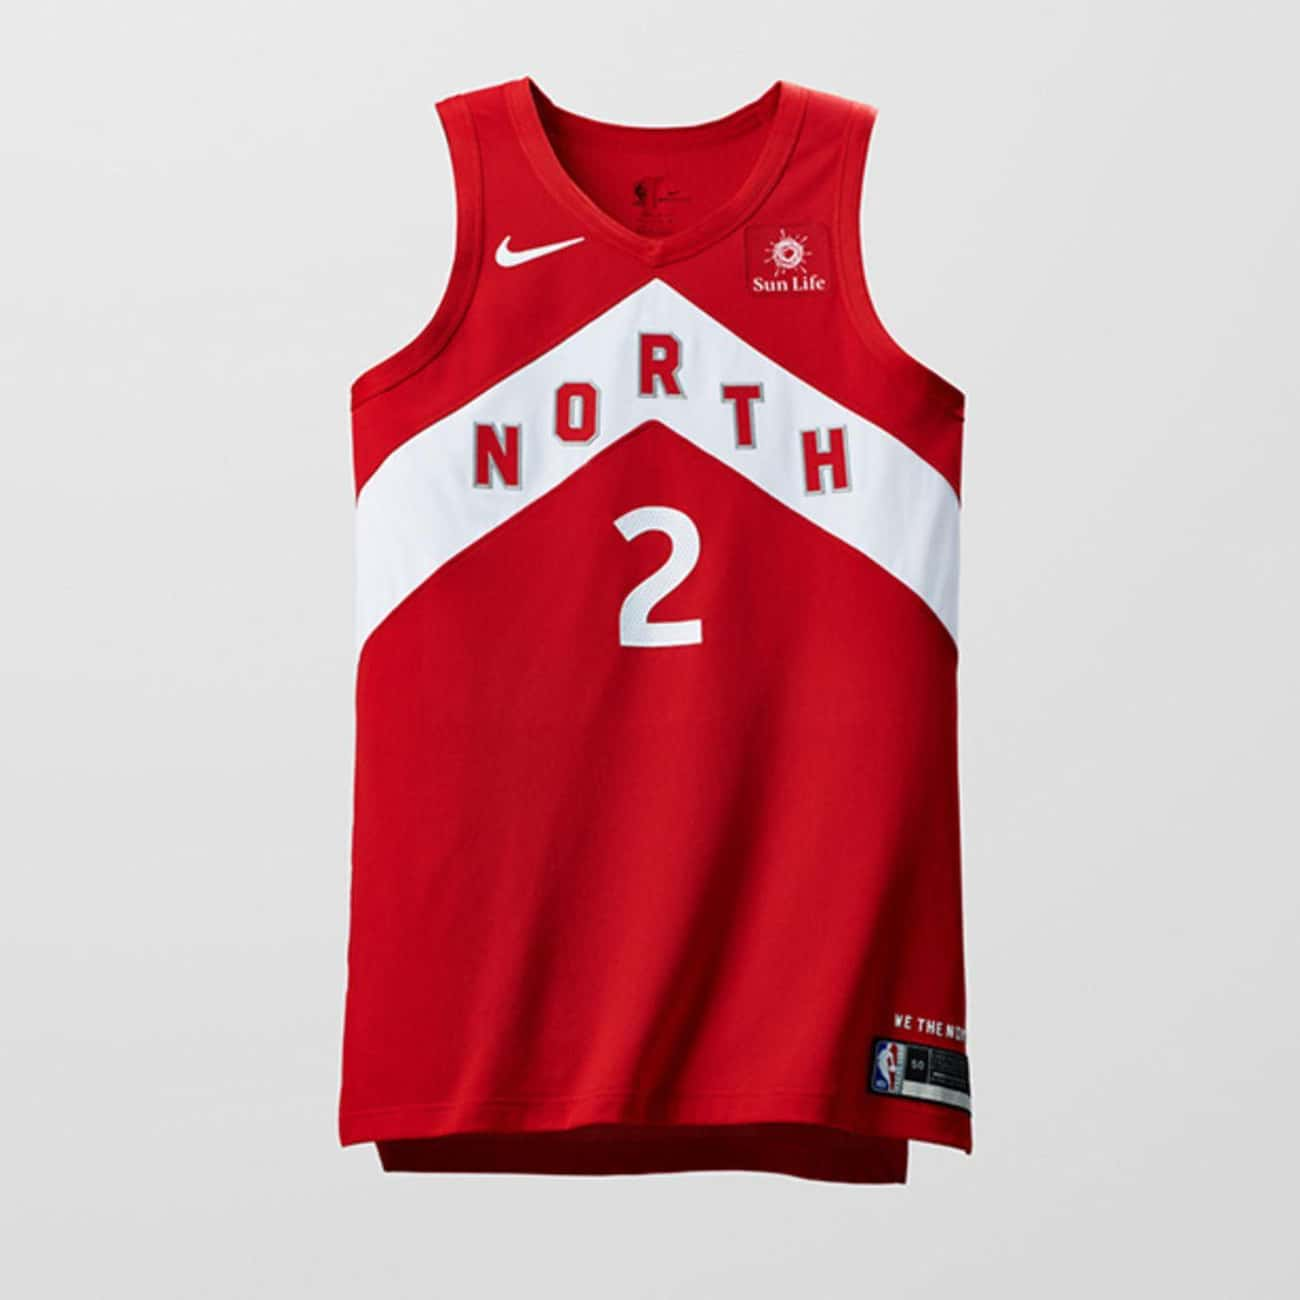 """Toronto Raptors is listed (or ranked) 4 on the list The Coolest NBA """"Earned Edition"""" Jerseys"""